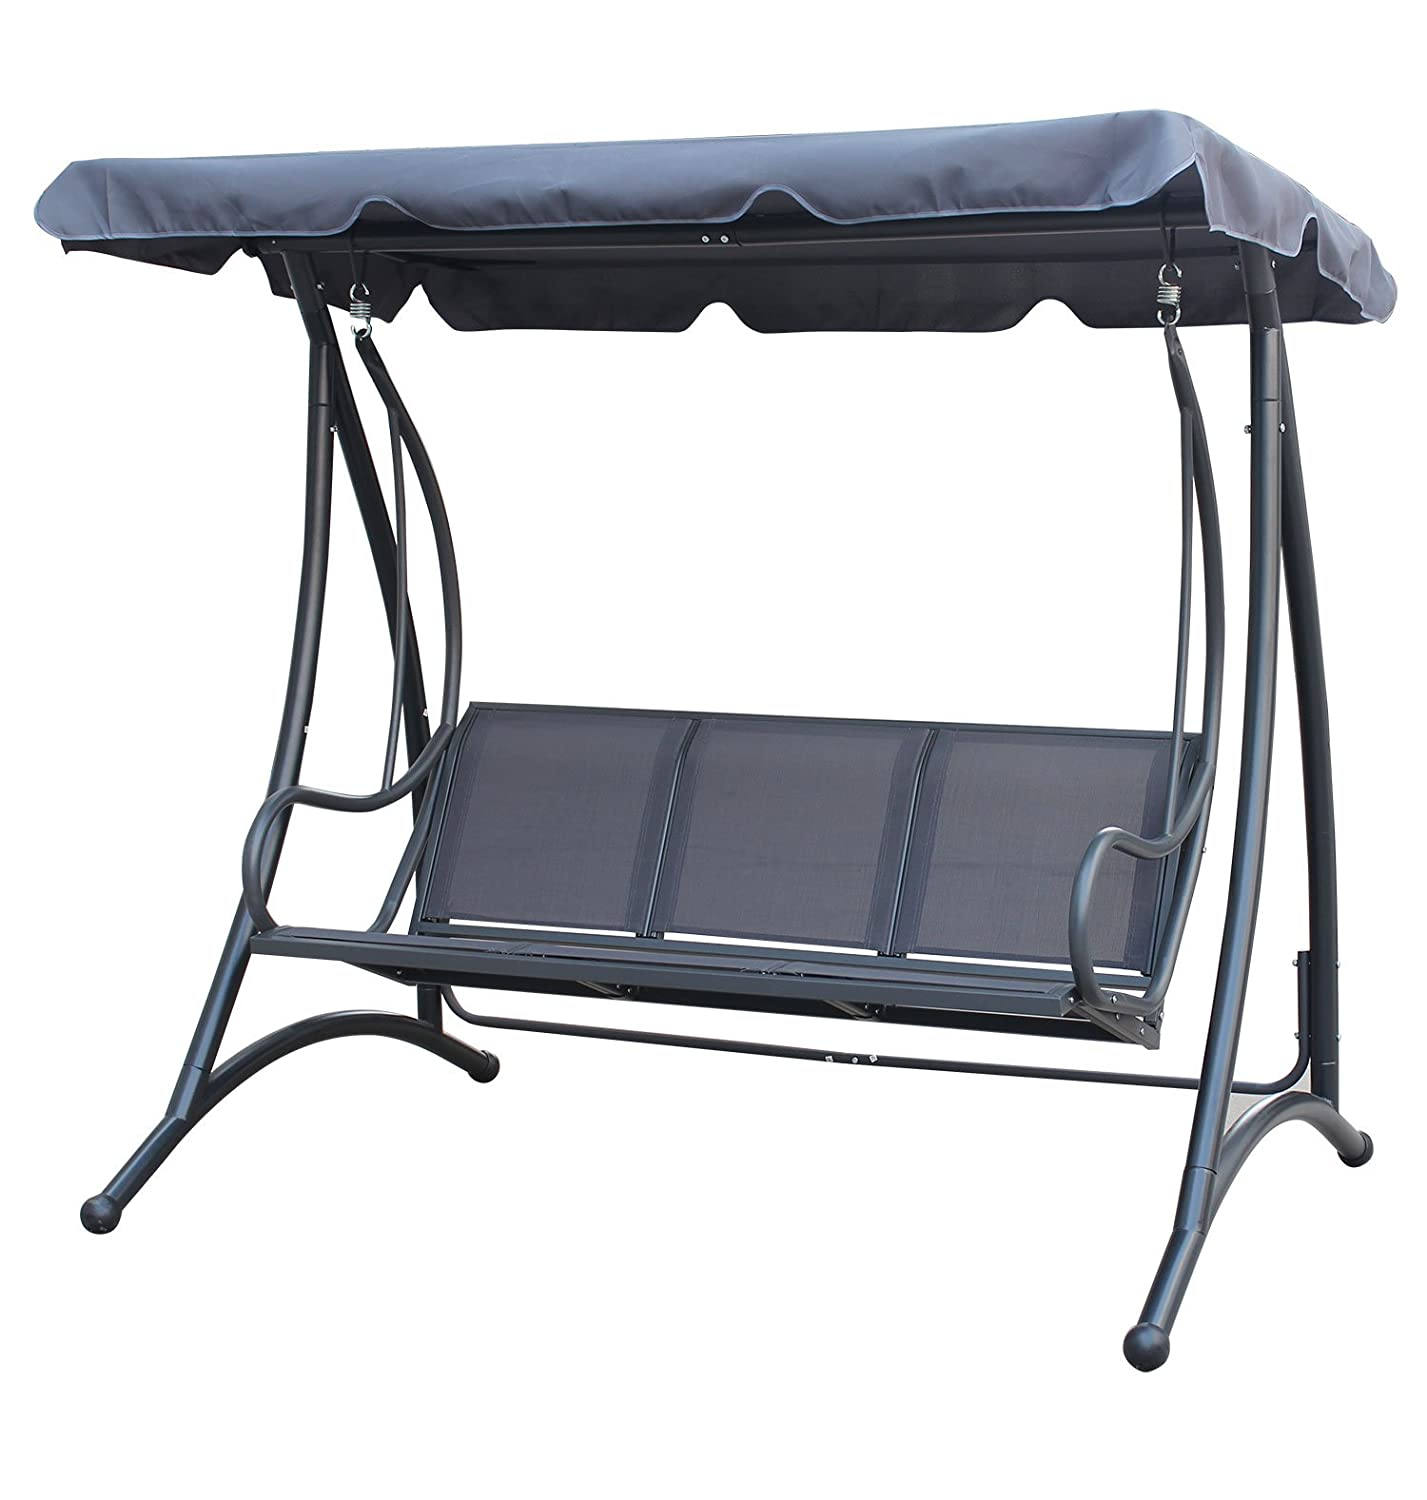 Charles Bentley Garden 3 Seater Outdoor Swing Seat Bench Chair Hammock With  Canopy  Grey: Amazon.co.uk: Garden U0026 Outdoors